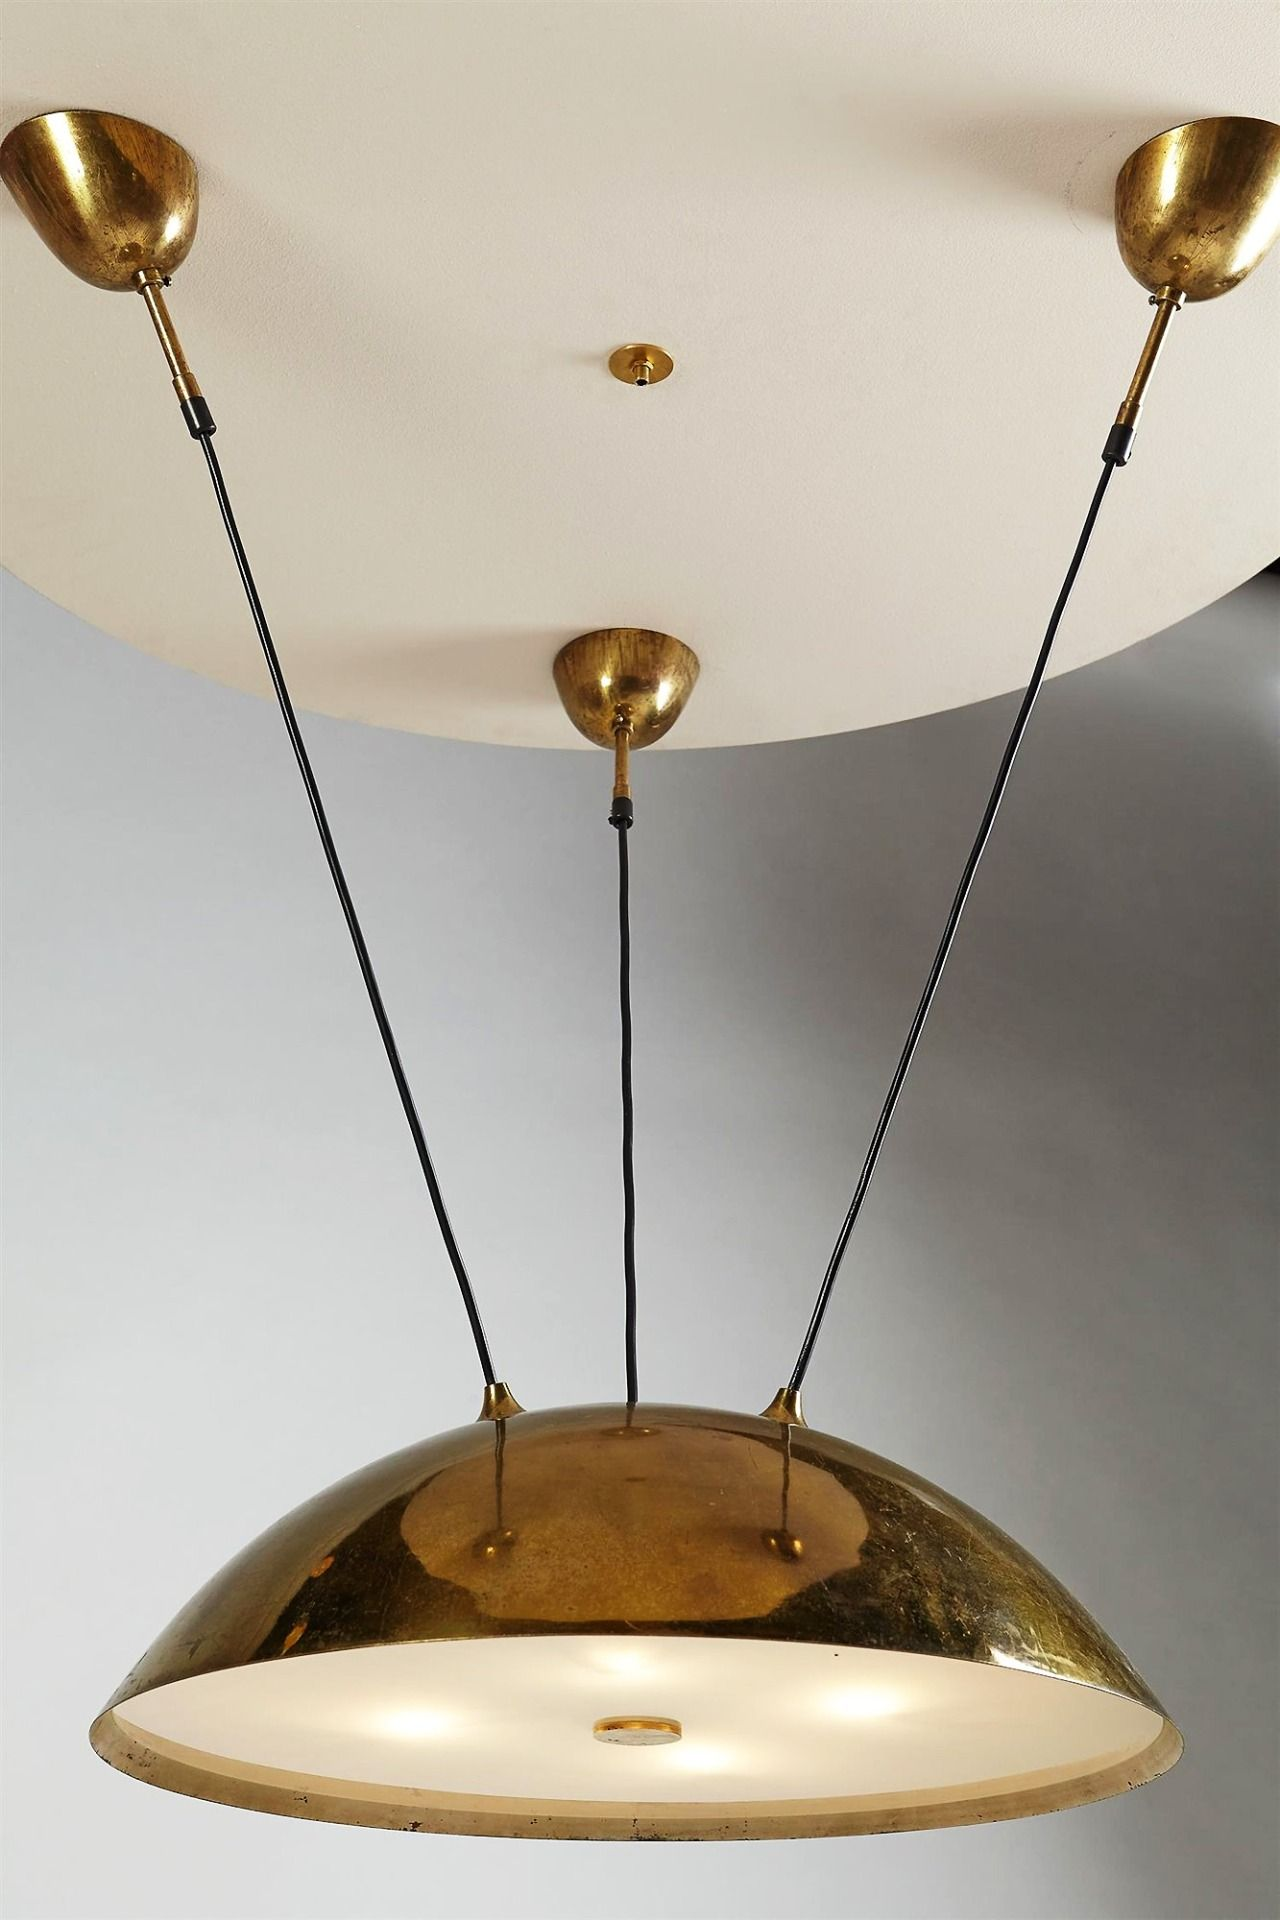 Ceiling Light By Paavo Tynell Finland 1950 S Polished Brass And Frosted Glass Manufectured By Taito Oy Finland Mod Ceiling Lights Light Vintage Lamps